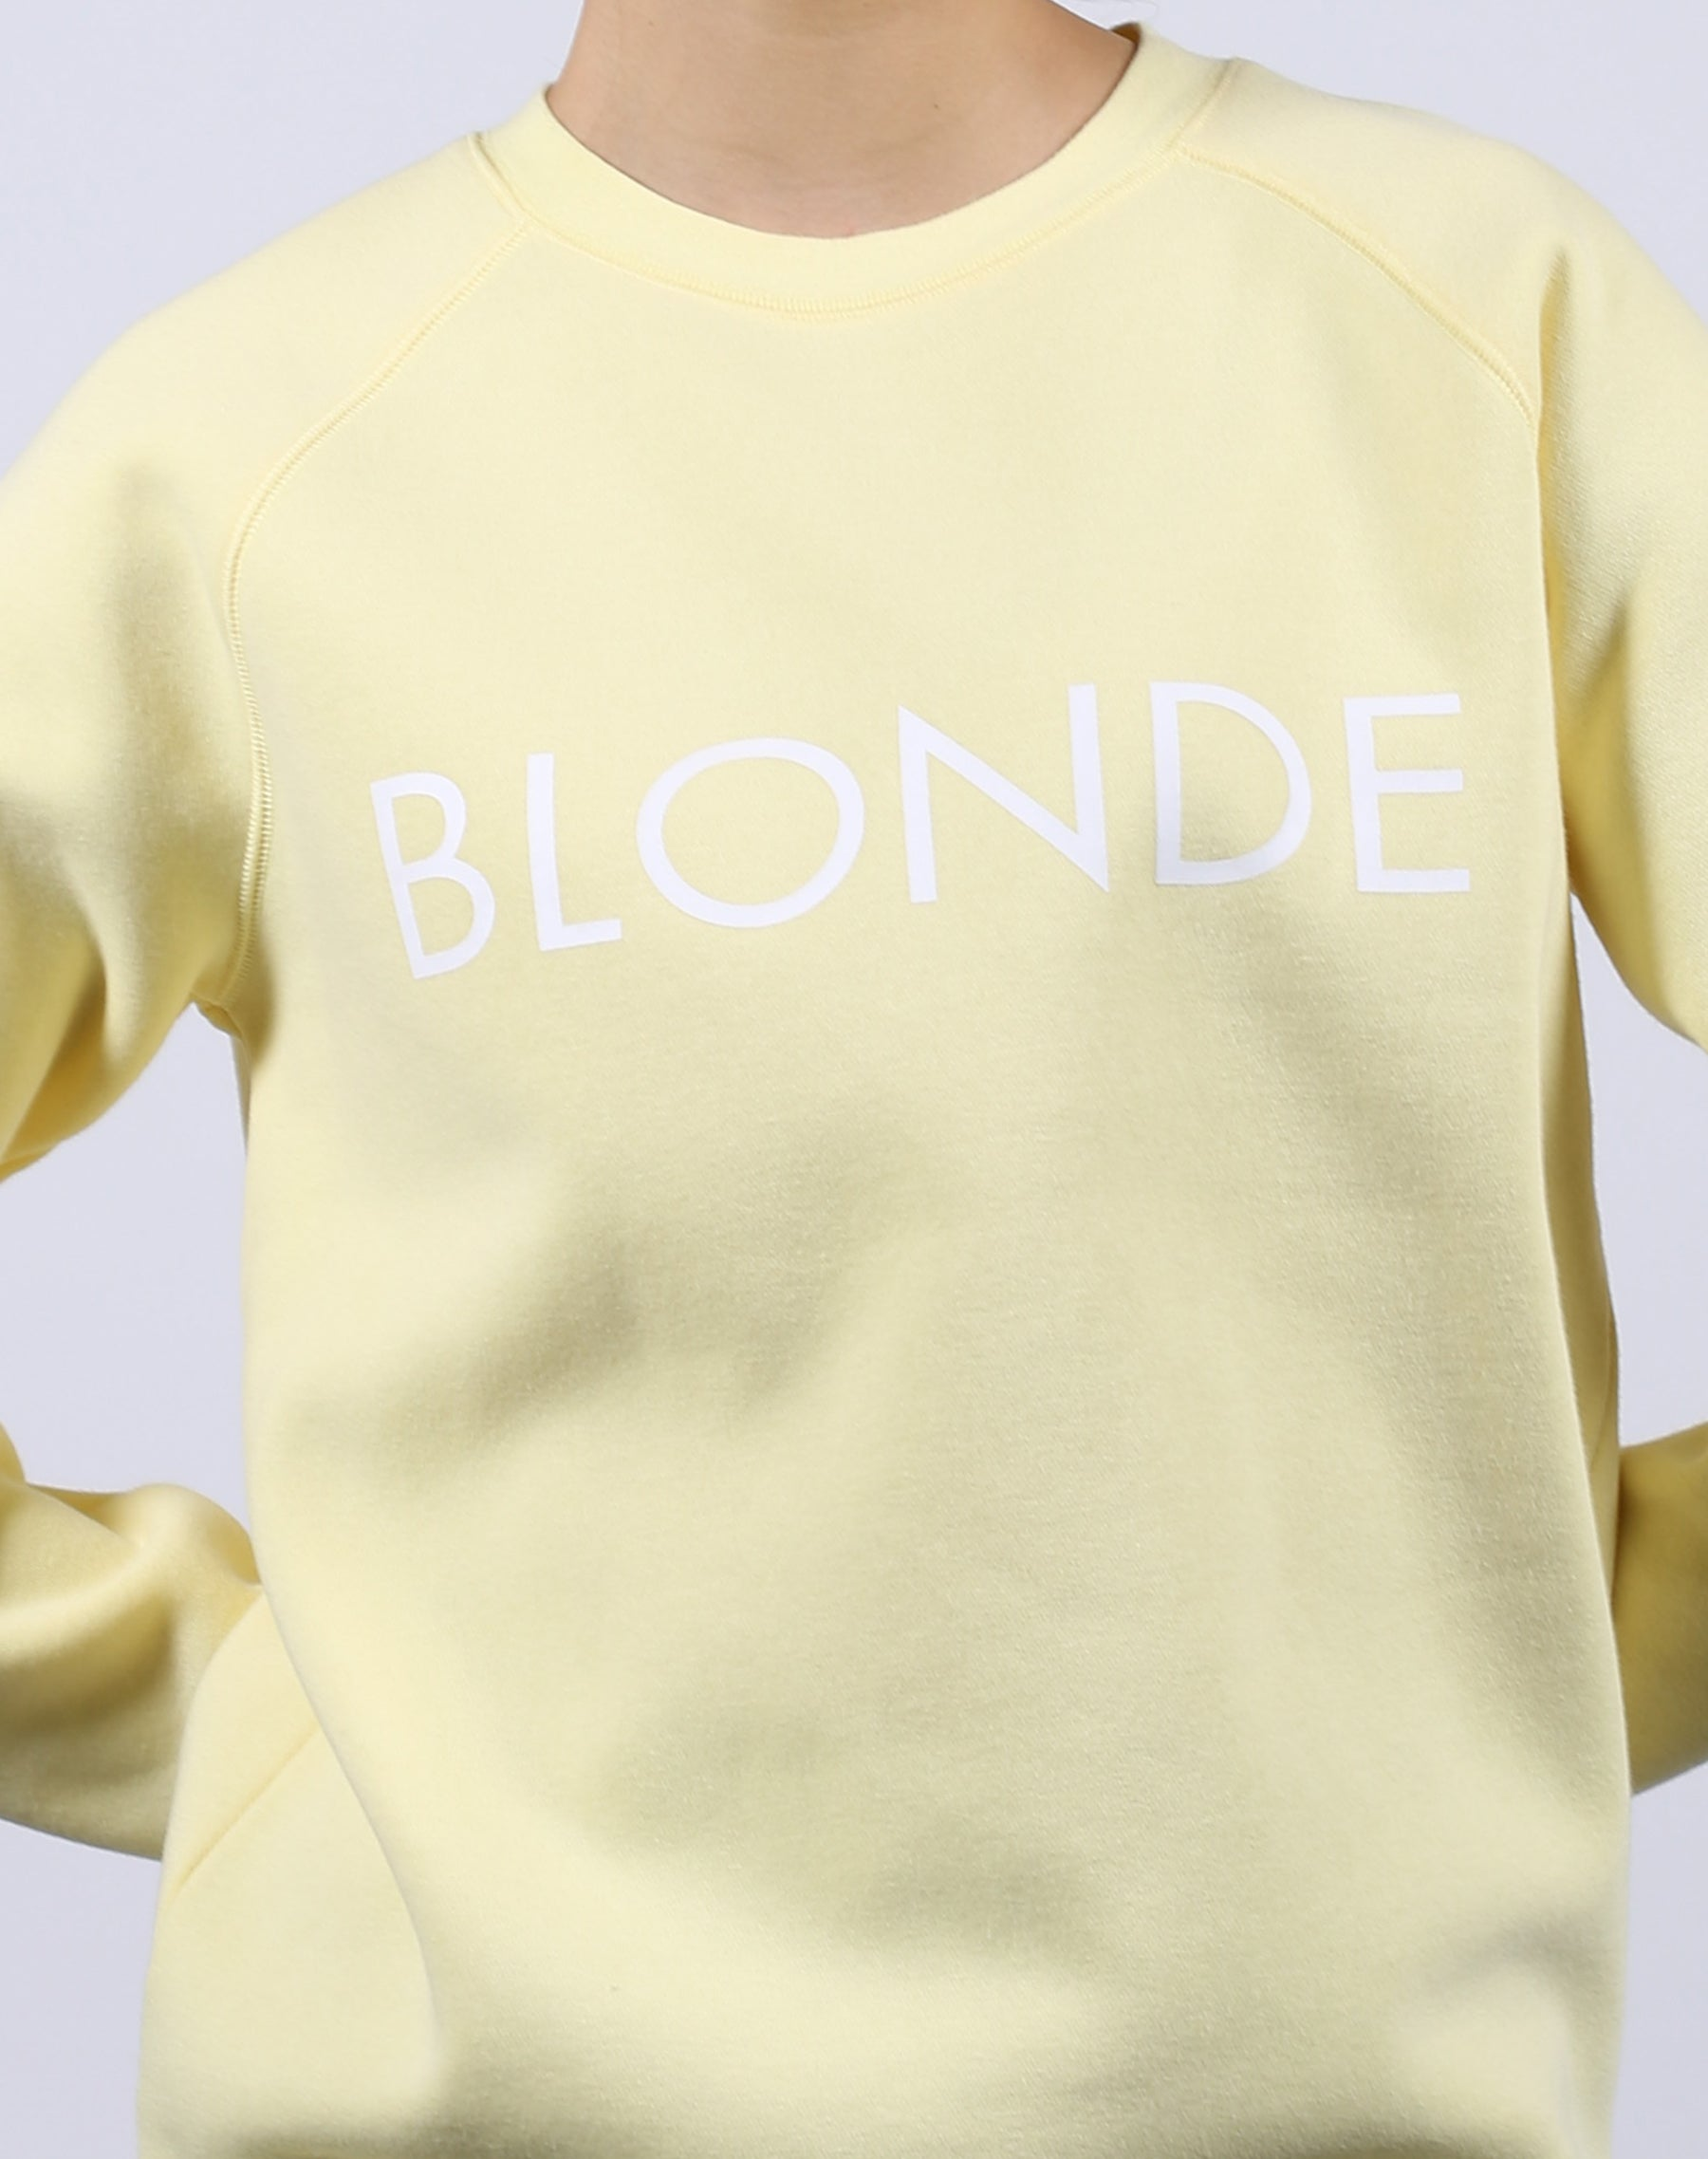 This is a Ecommerce photo of the Blonde Lemon Classic Crew neck Sweatshirt by Brunette the Label